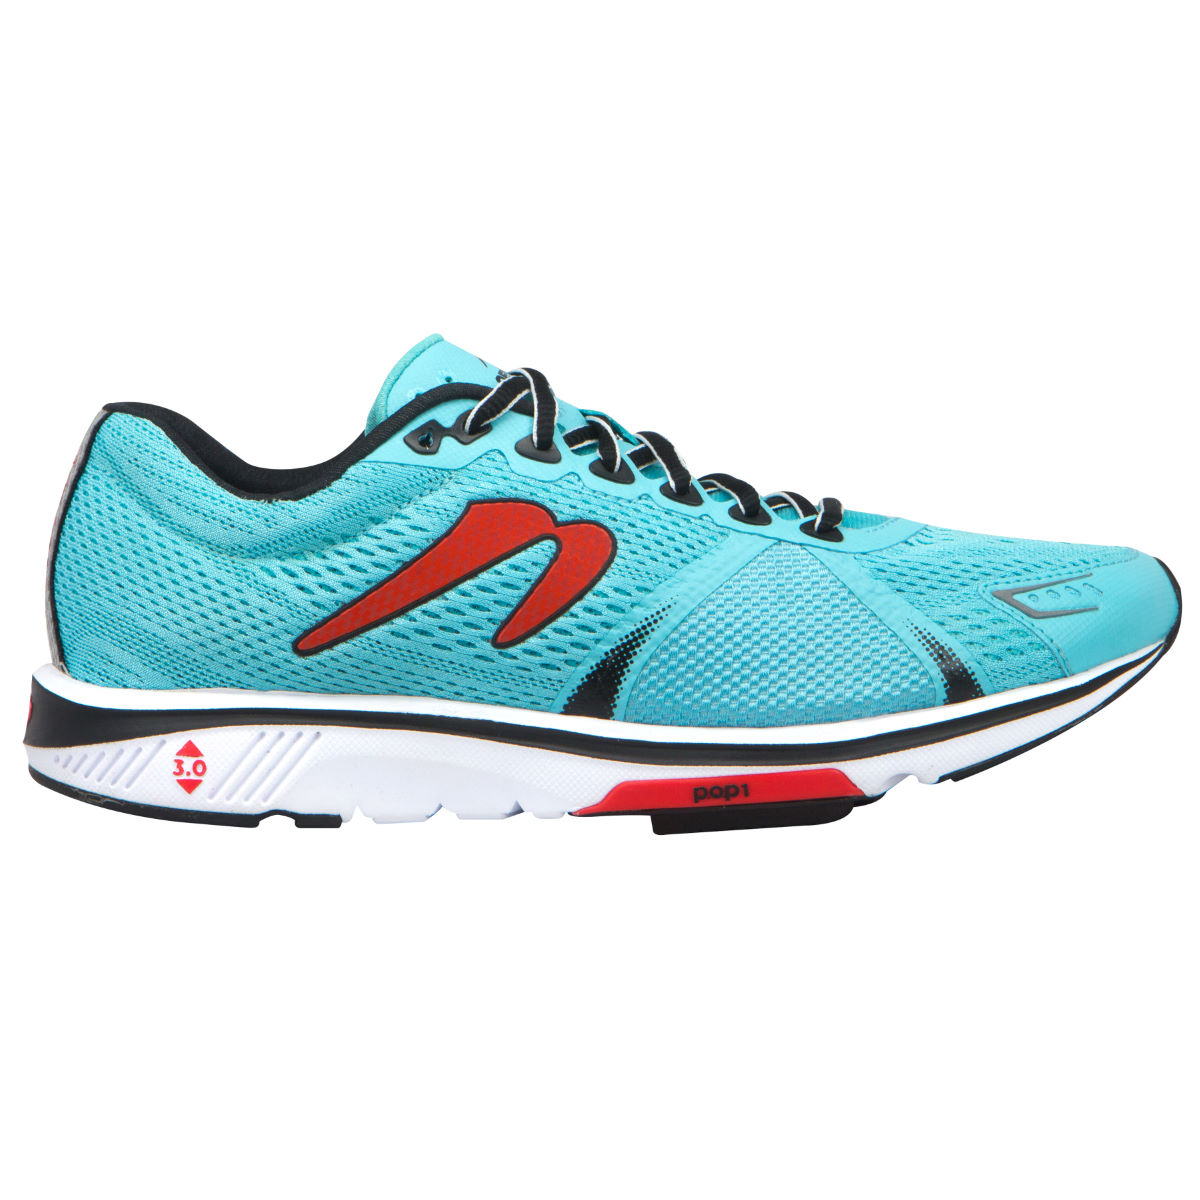 Chaussures Newton Running Gravity V (PE16) - 13 UK Blue/Red Chaussures de running amorties